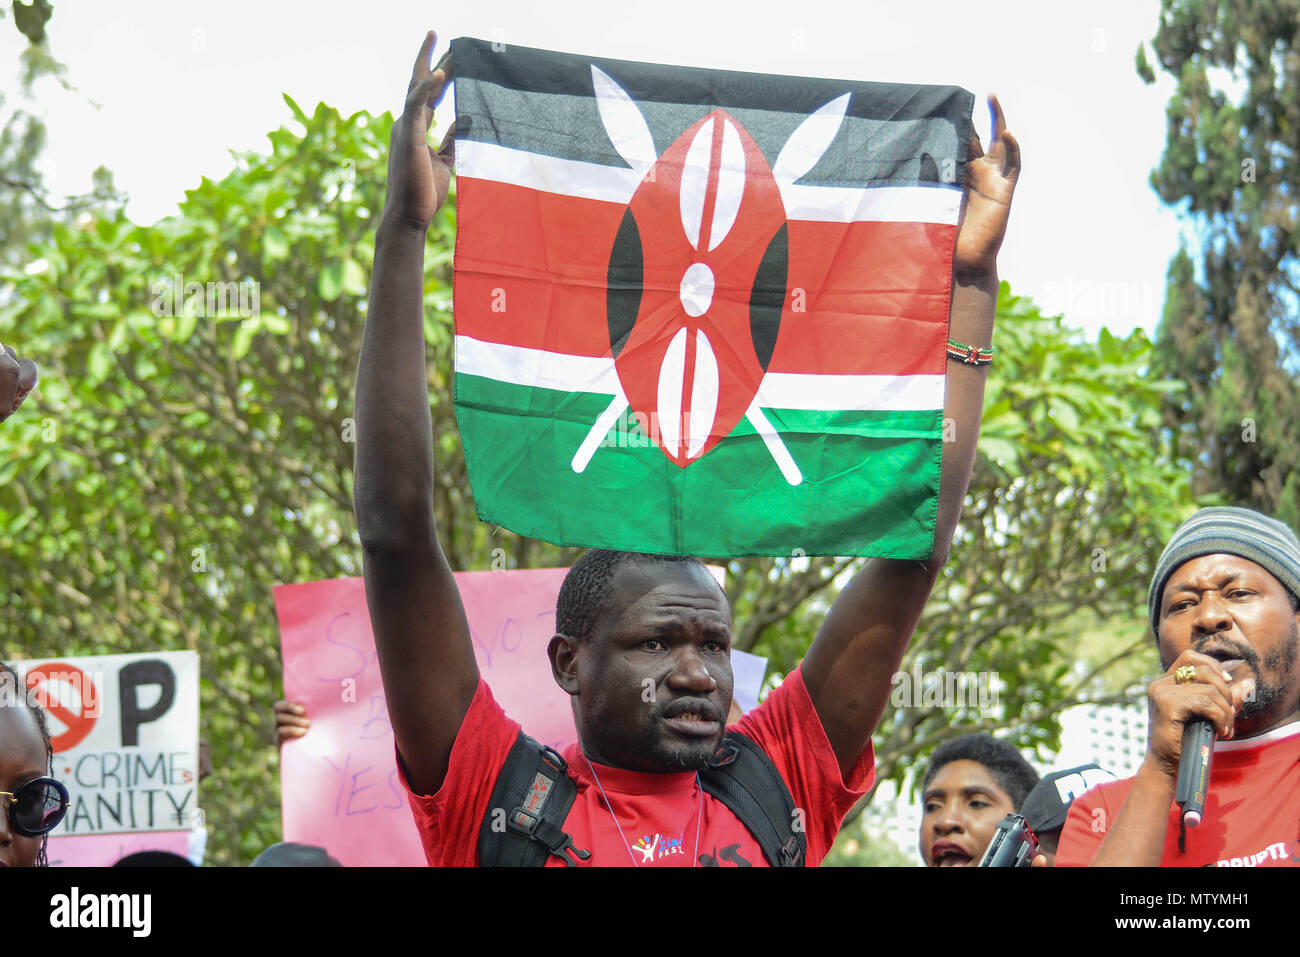 Nairobi, Kenya. 31st May, 2018. A protestor carry a Kenyan Flag as citizens protest in the streets of the capital city Nairobi. Protesters take the street to call the government to arrest people involved in massive corruption scandals. In a recent scandal involving National Youth Service (NYS), the Kenyan government lost Ksh9 billions in dubious tender deals. Credit: SOPA Images Limited/Alamy Live News Stock Photo